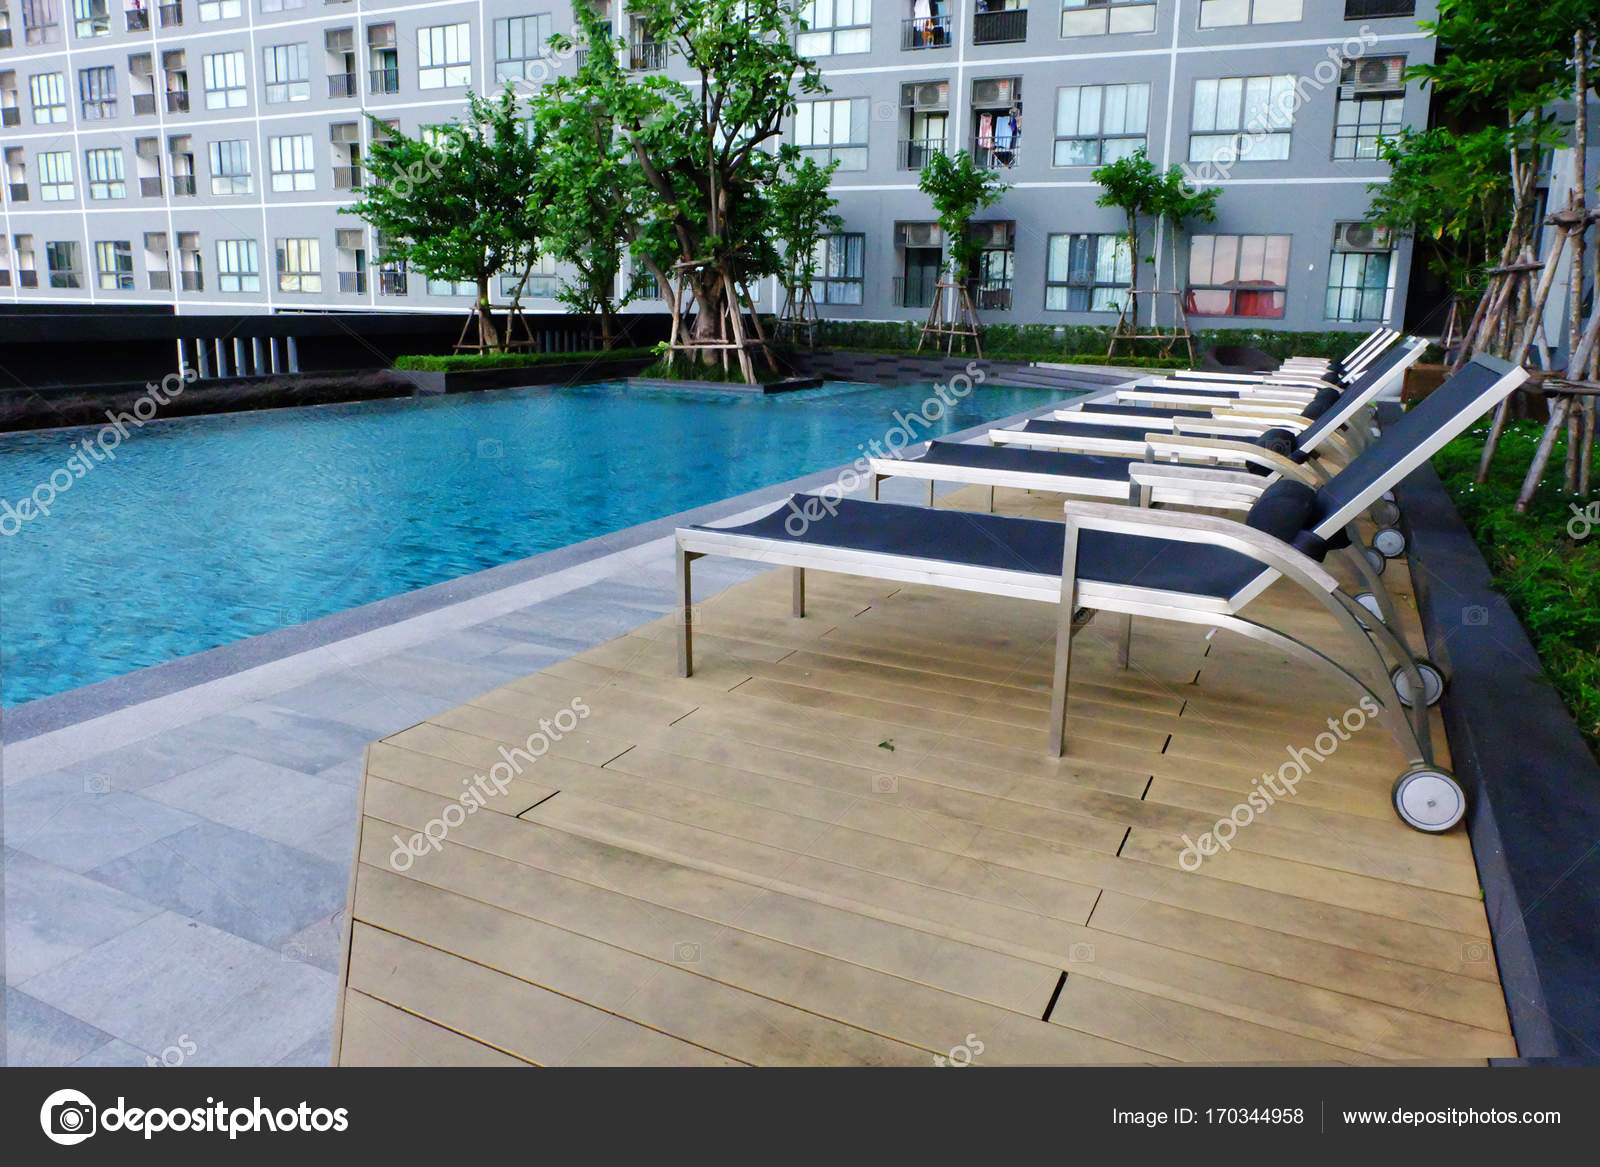 Blue Swimming Pool With Empty Chairs, Pool Chair For Relax Background Great  For Any Use. U2014 Photo By Yayha